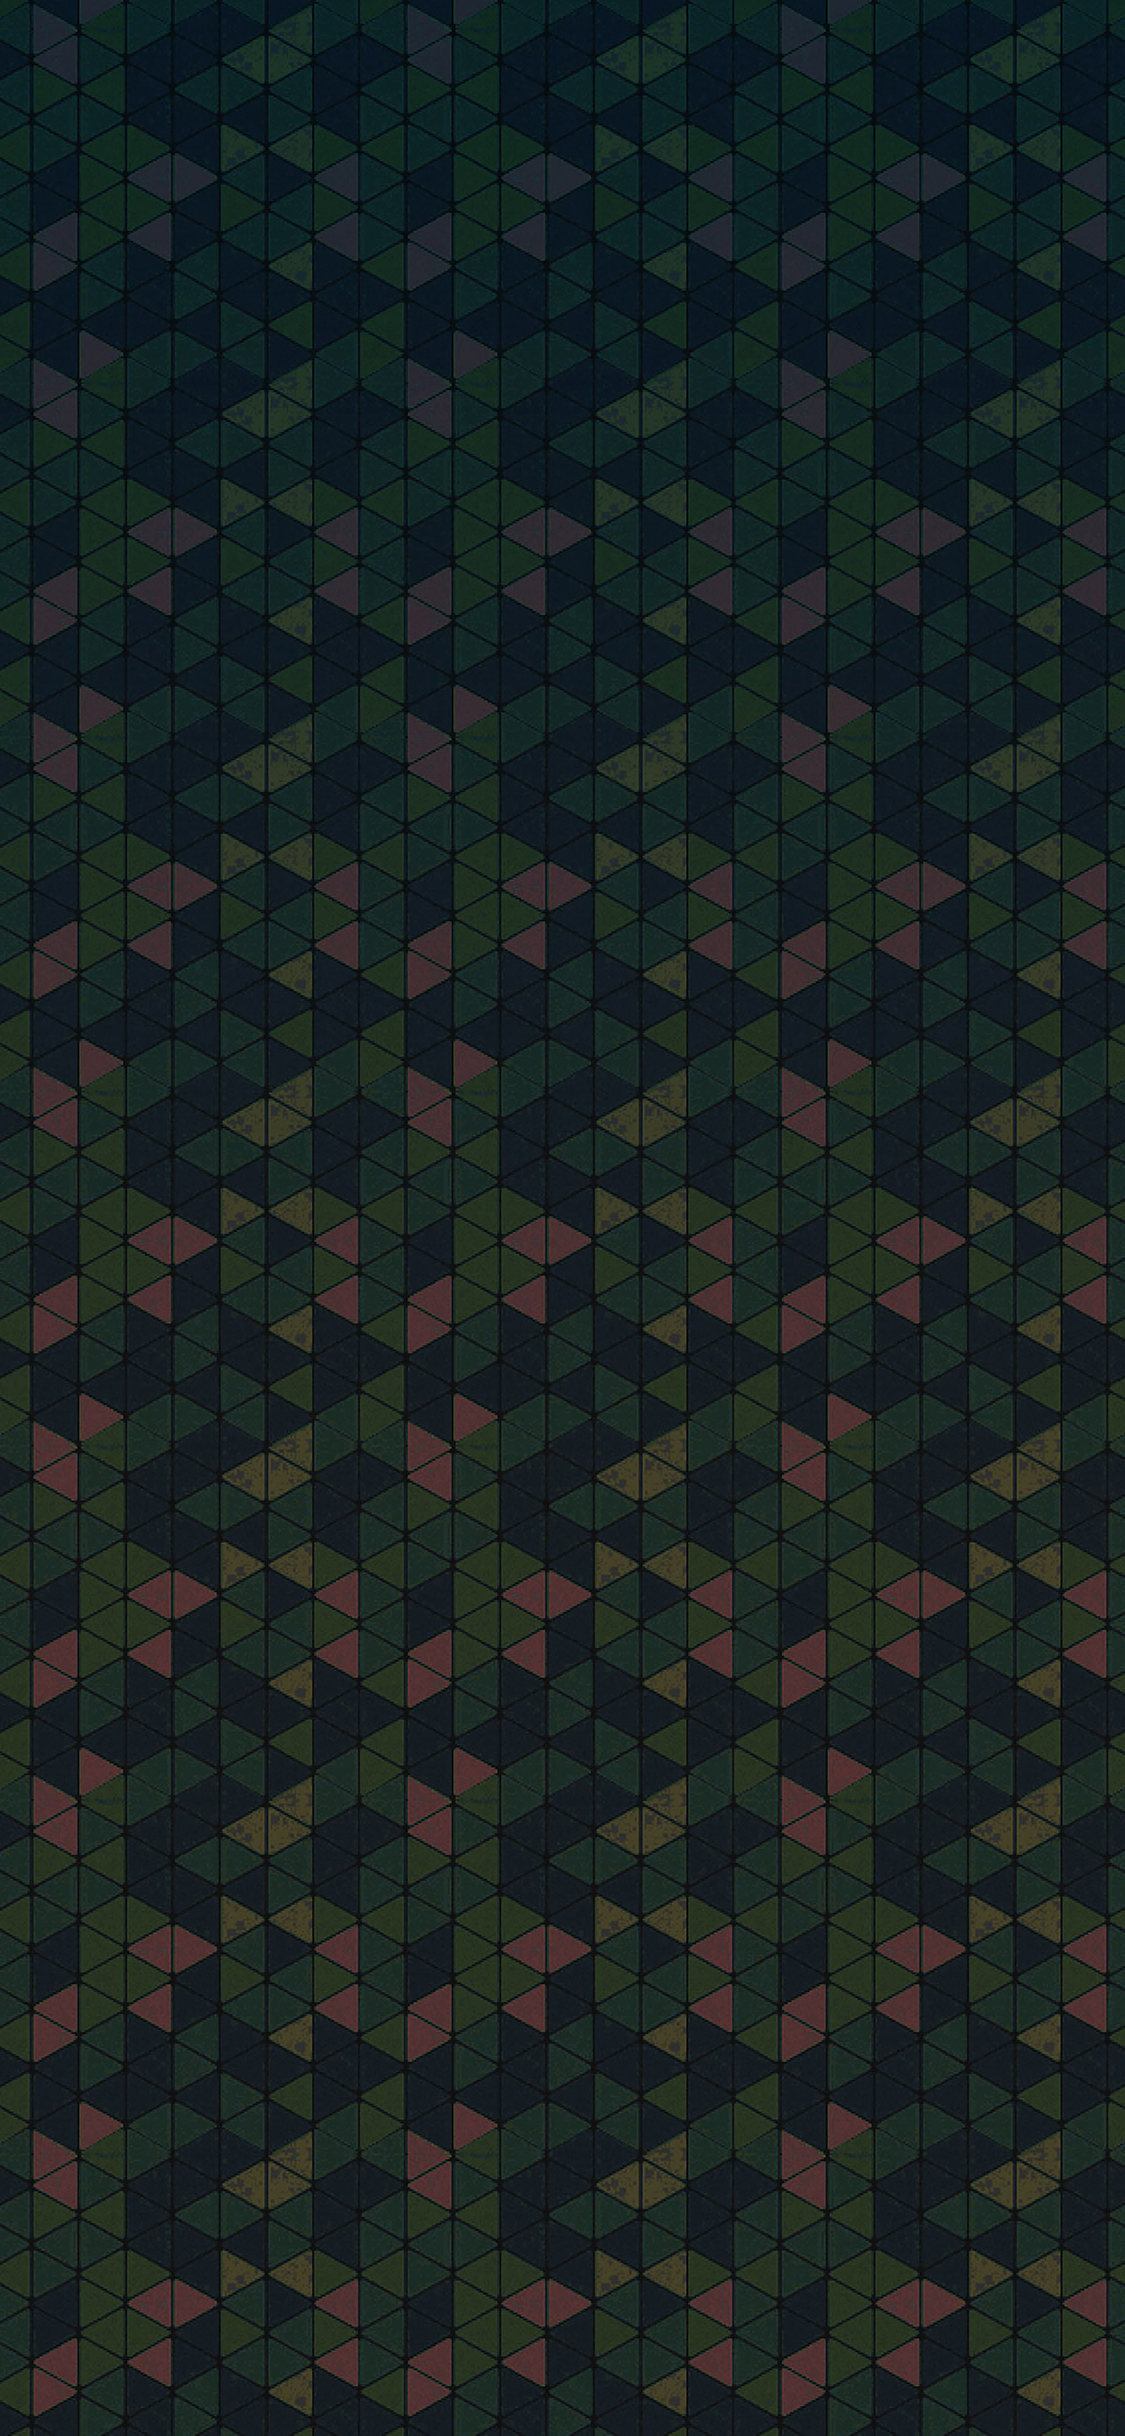 iPhoneXpapers.com-Apple-iPhone-wallpaper-va89-wallpaper-gplay-green-pattern